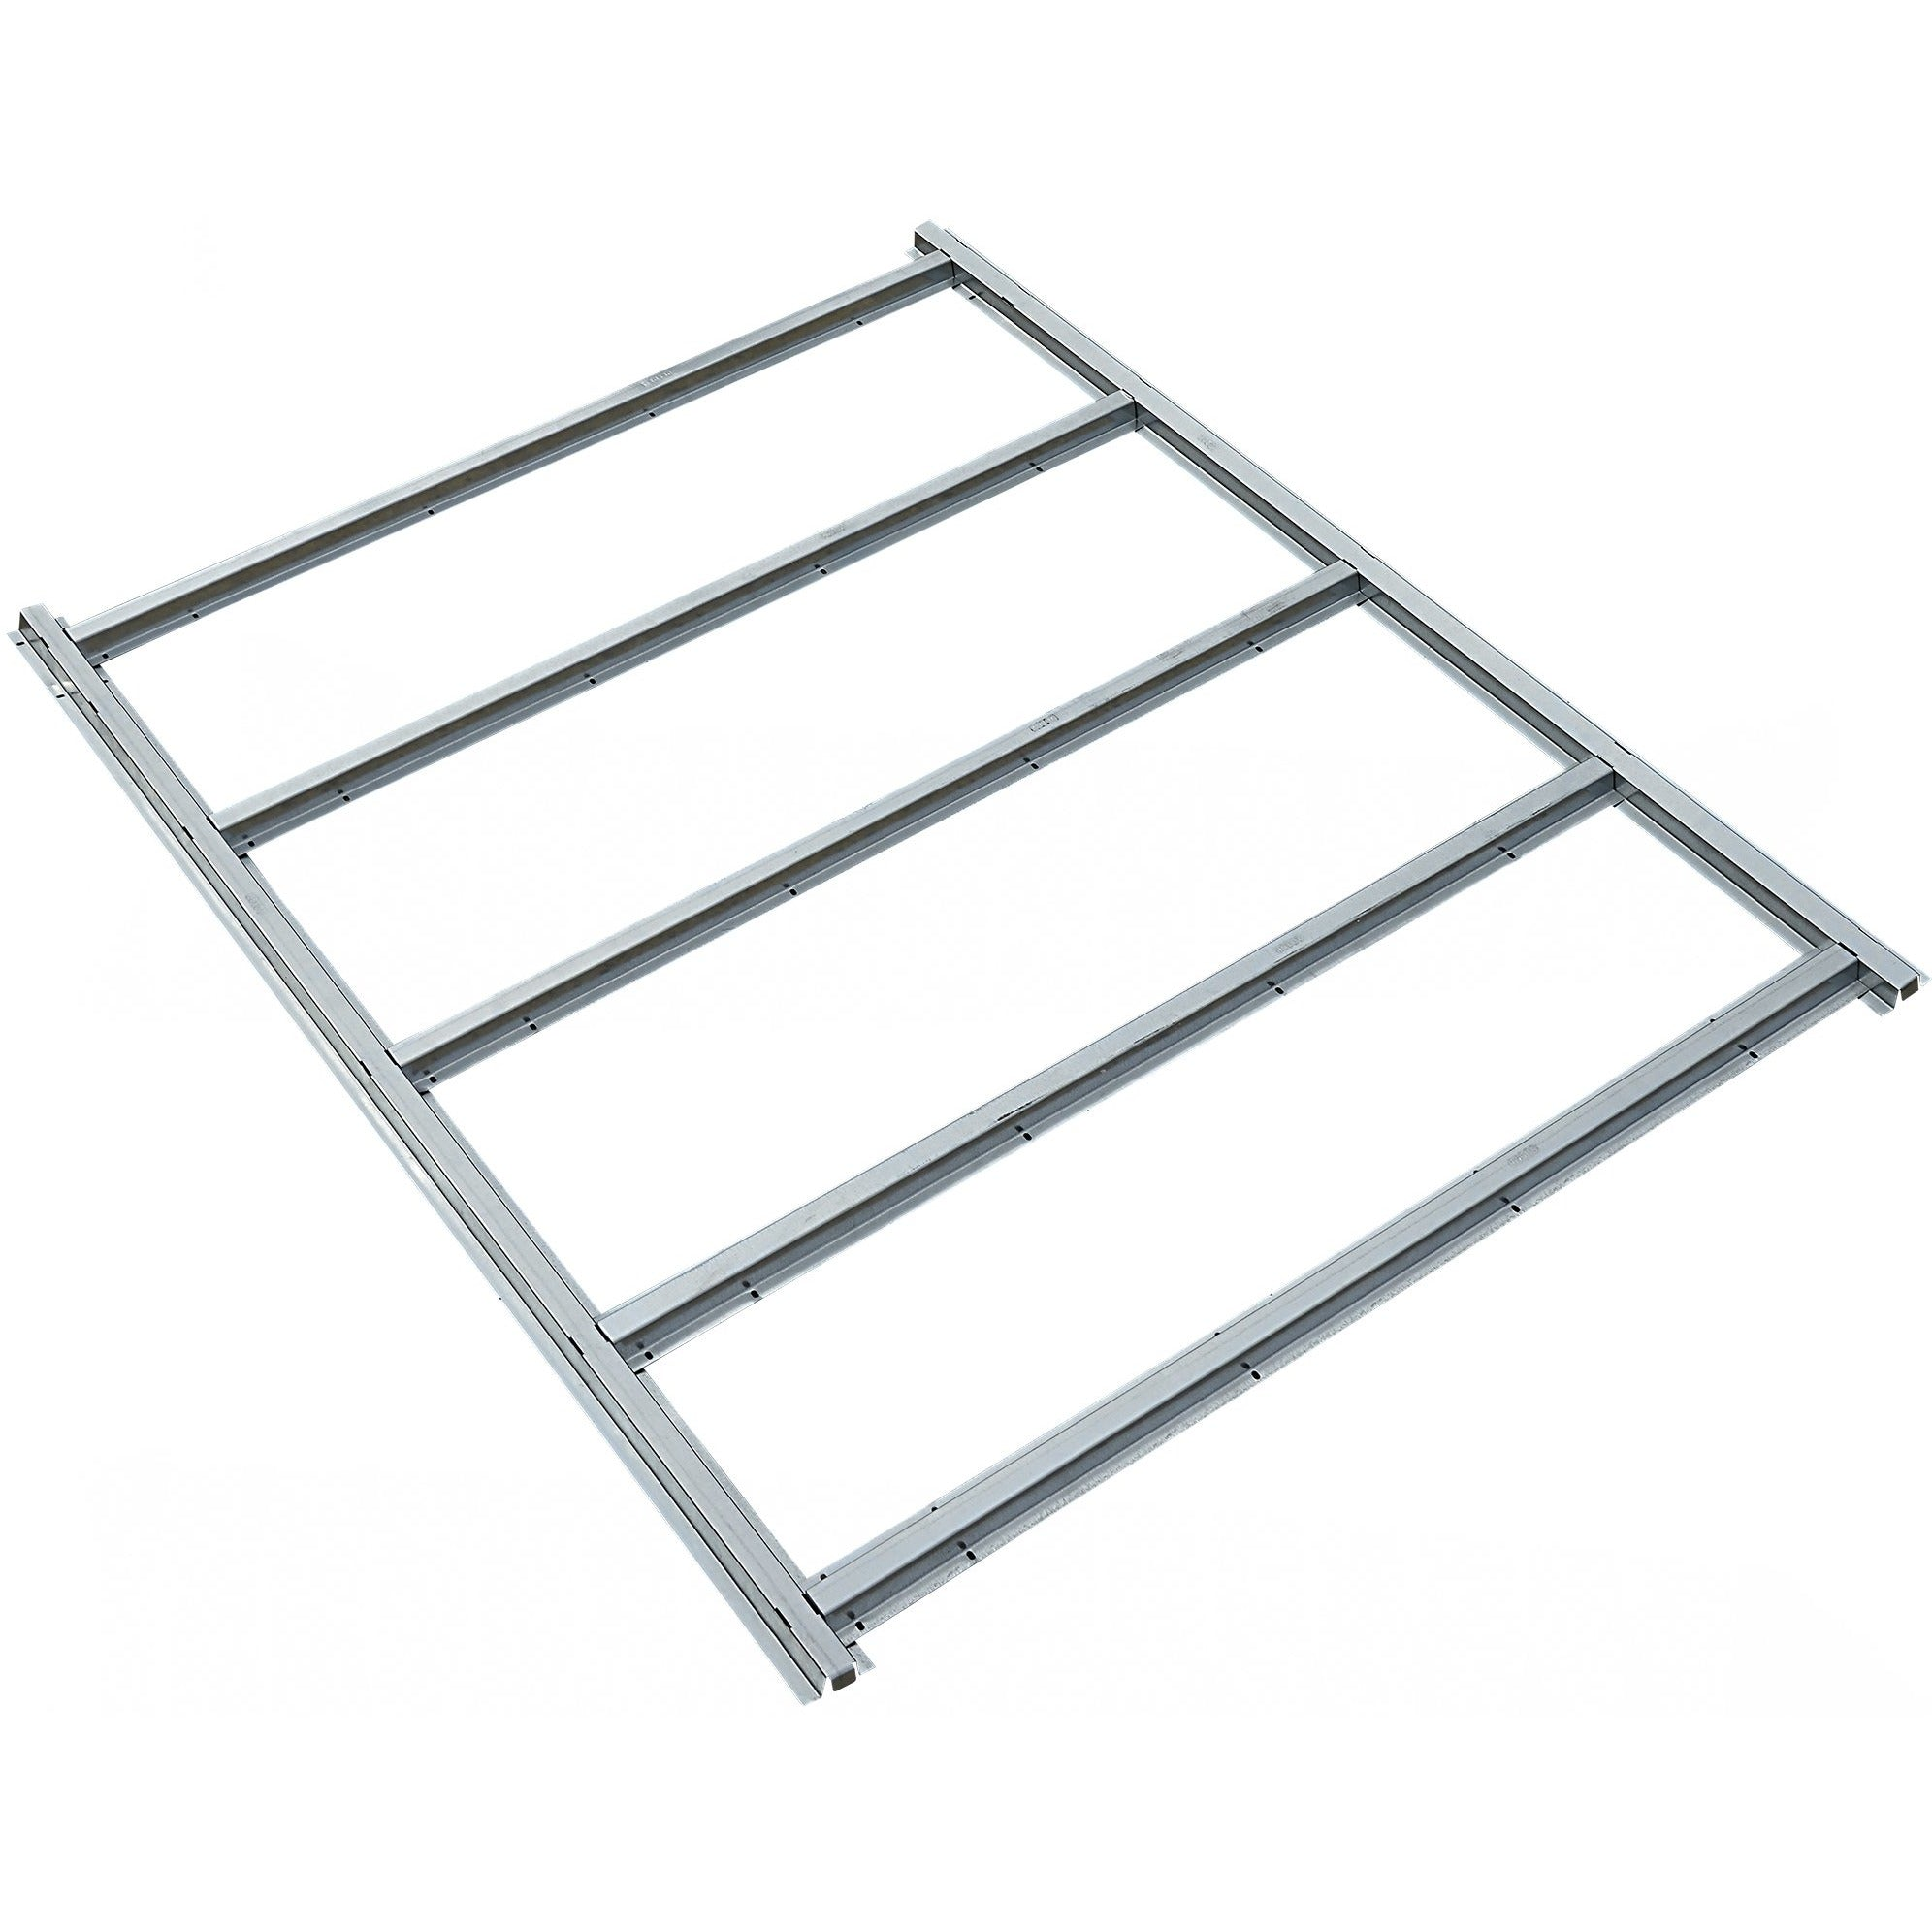 EZEE Shed Floor Frame Kit Steel Ground Barrier for 6x5, 8x7, 10x8 ...